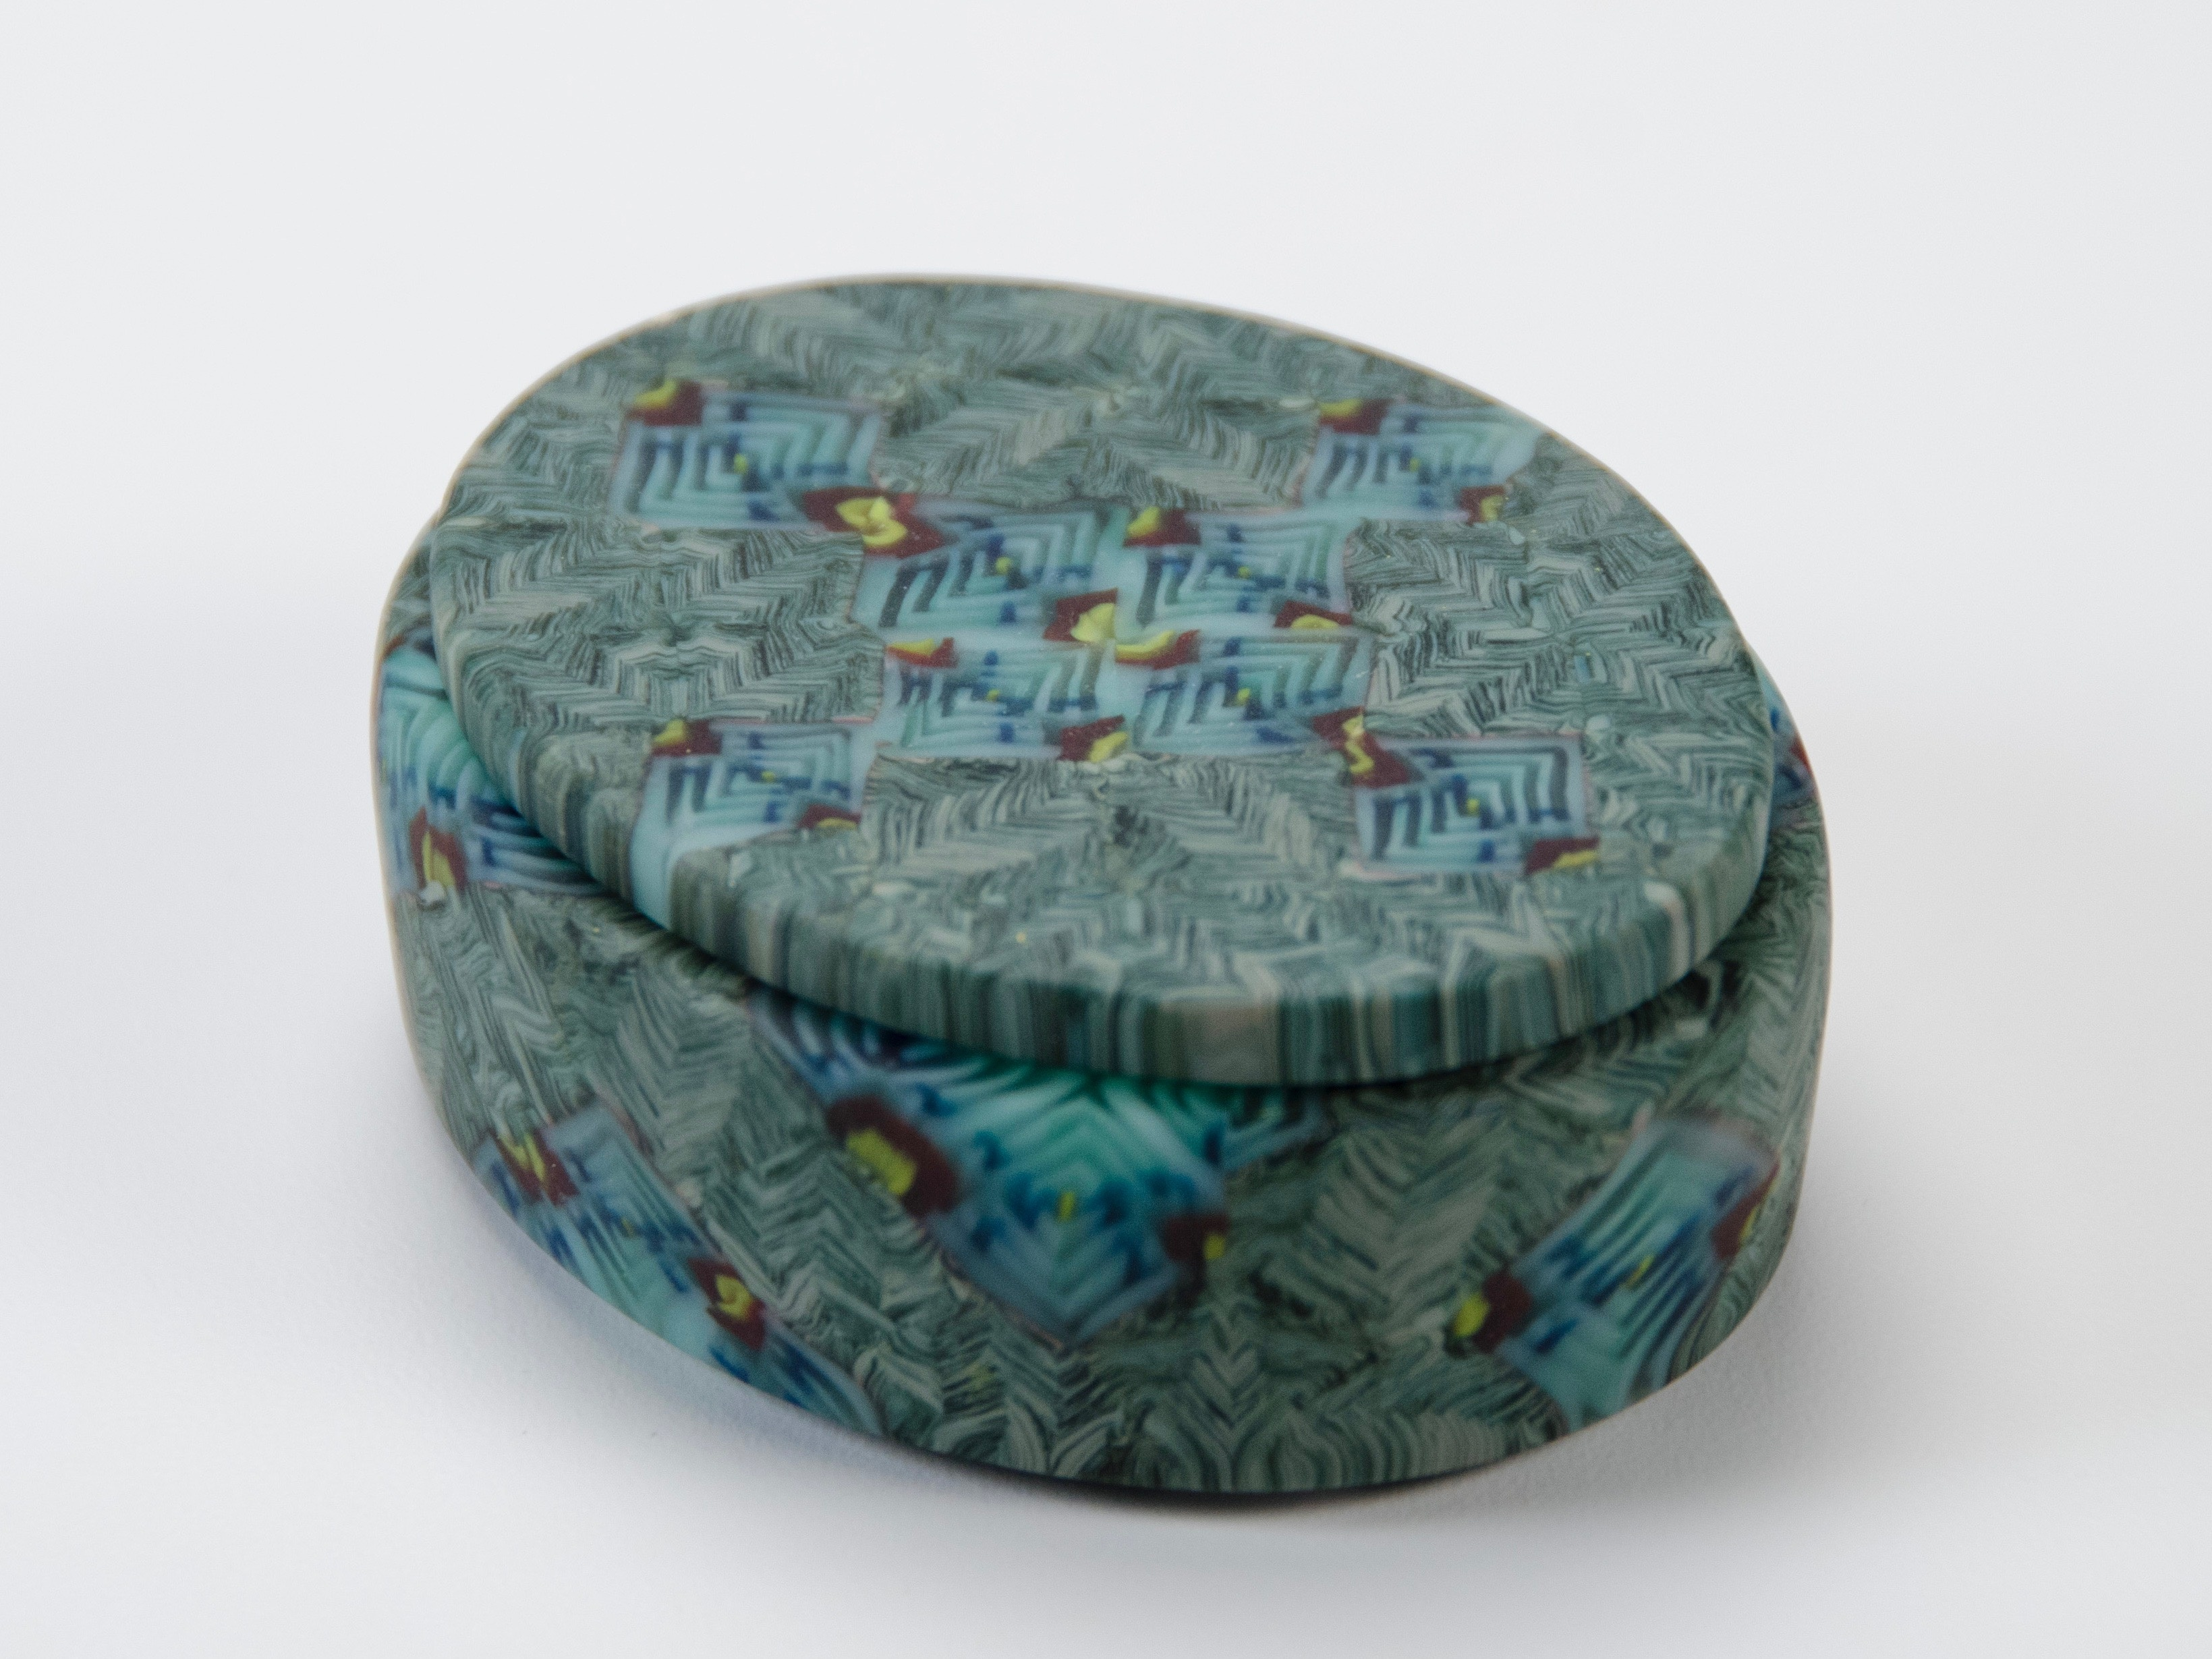 Yoko Yagi, Small Box, kilnformed and coldworked murrine glass